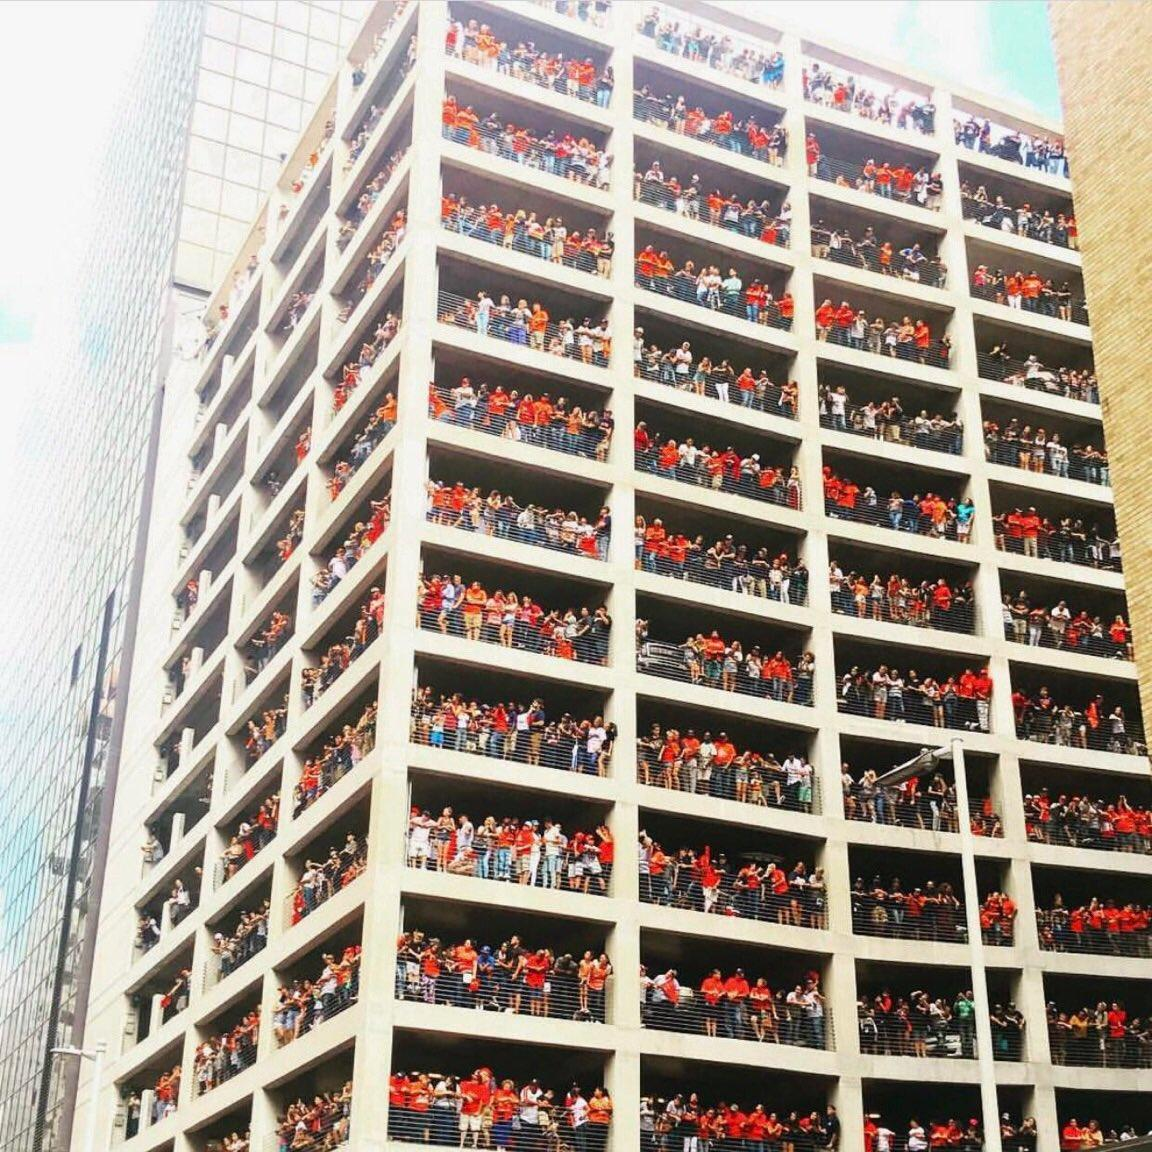 View of the parking garage overlooking the Astros parade